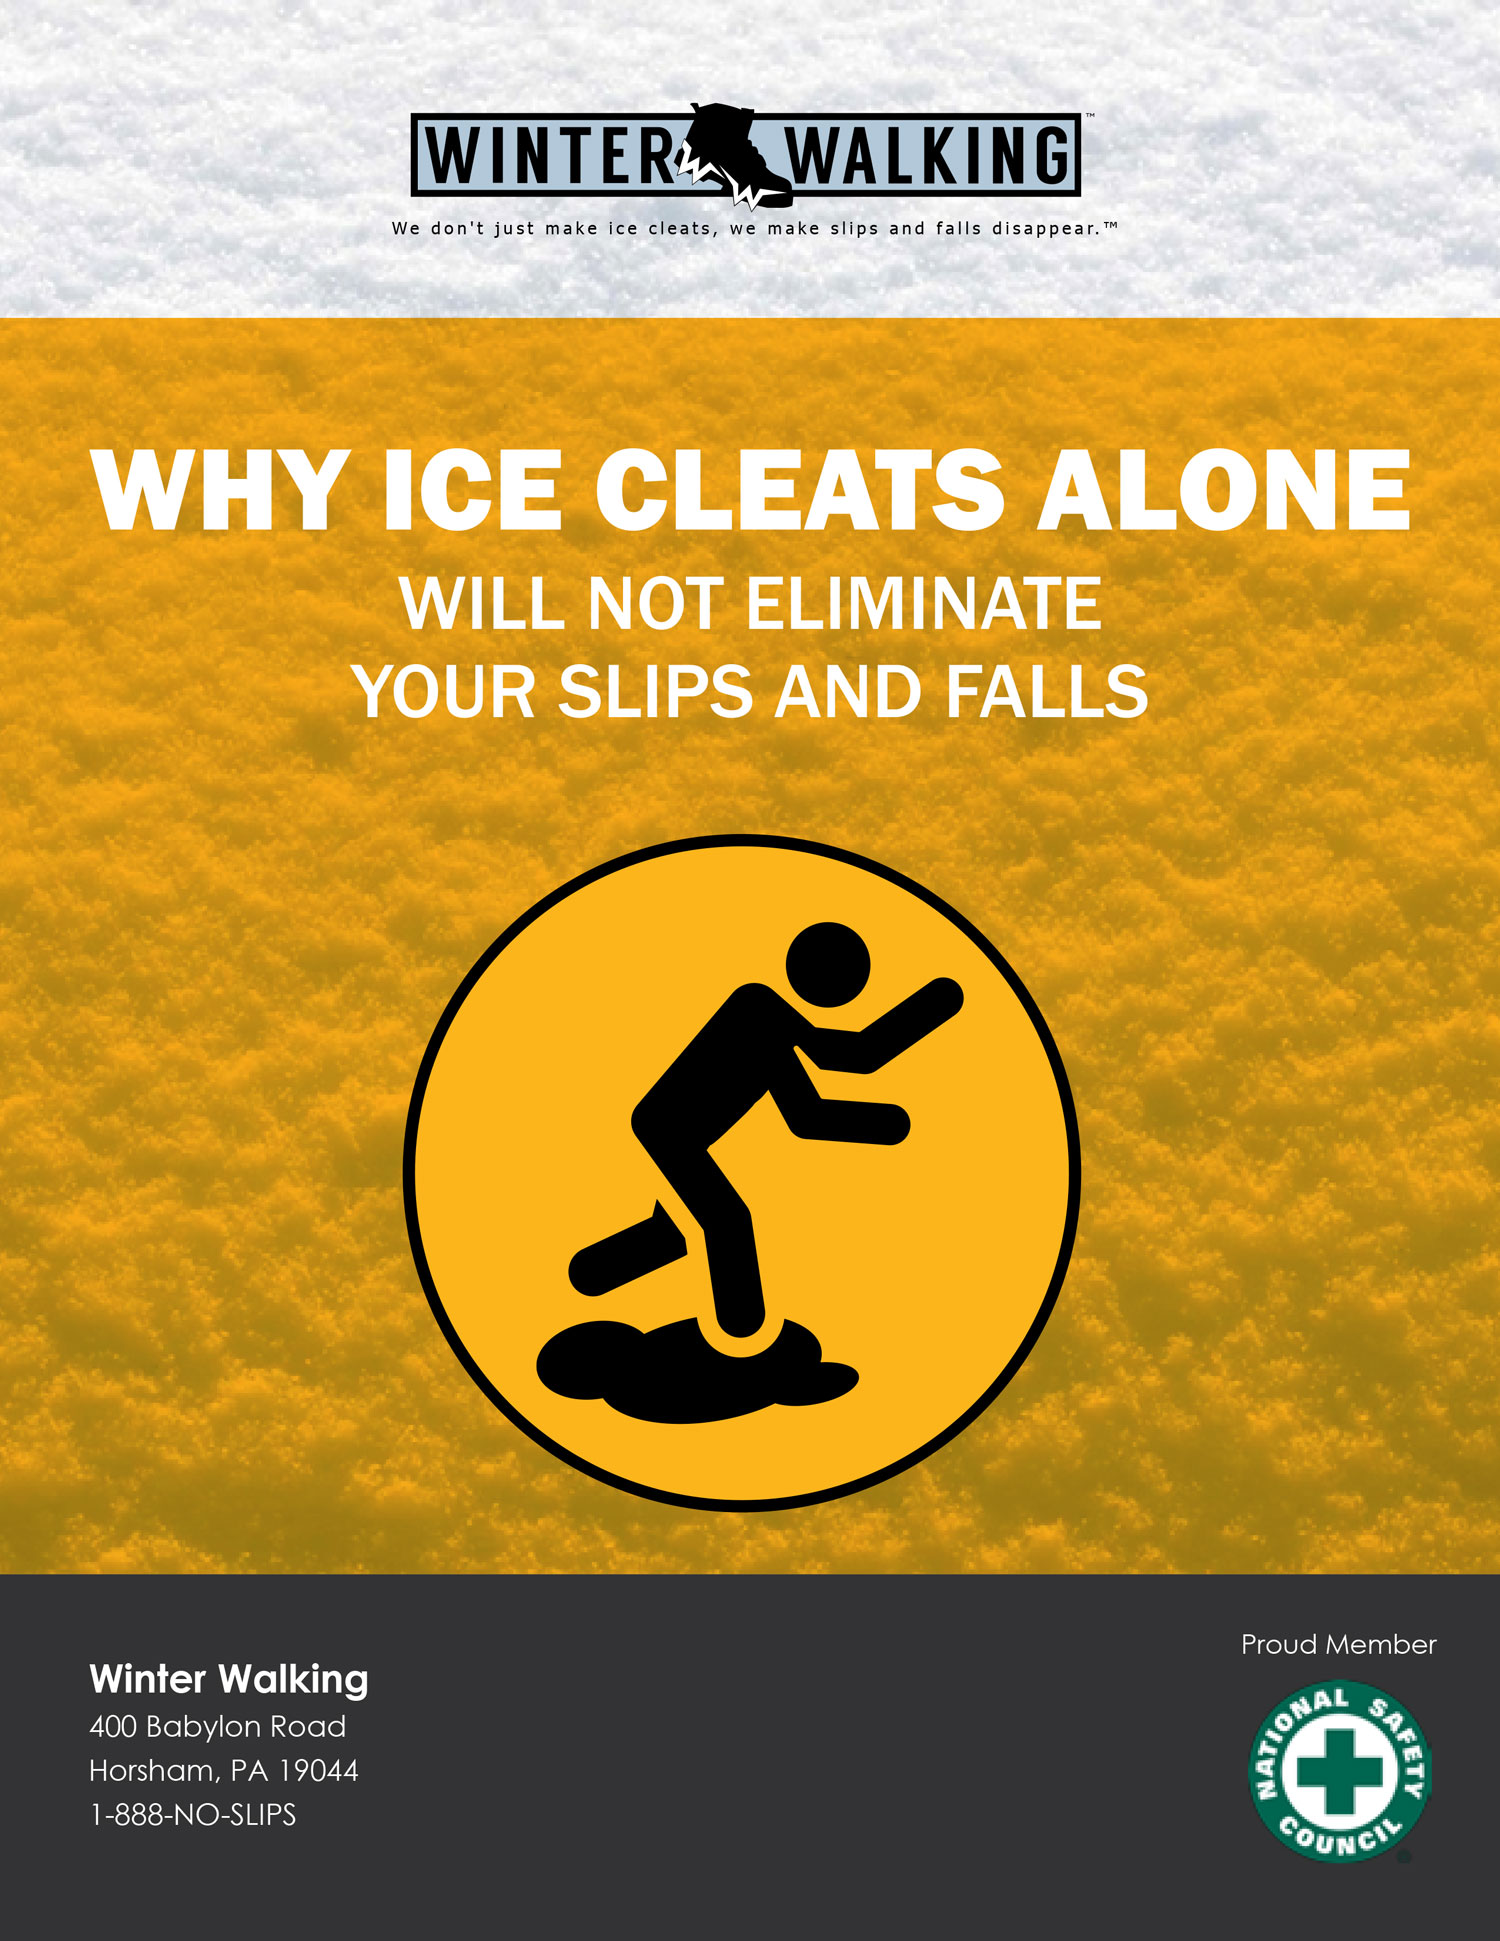 Why Ice Cleats Alone Will Not Eliminate Your Slips and Falls